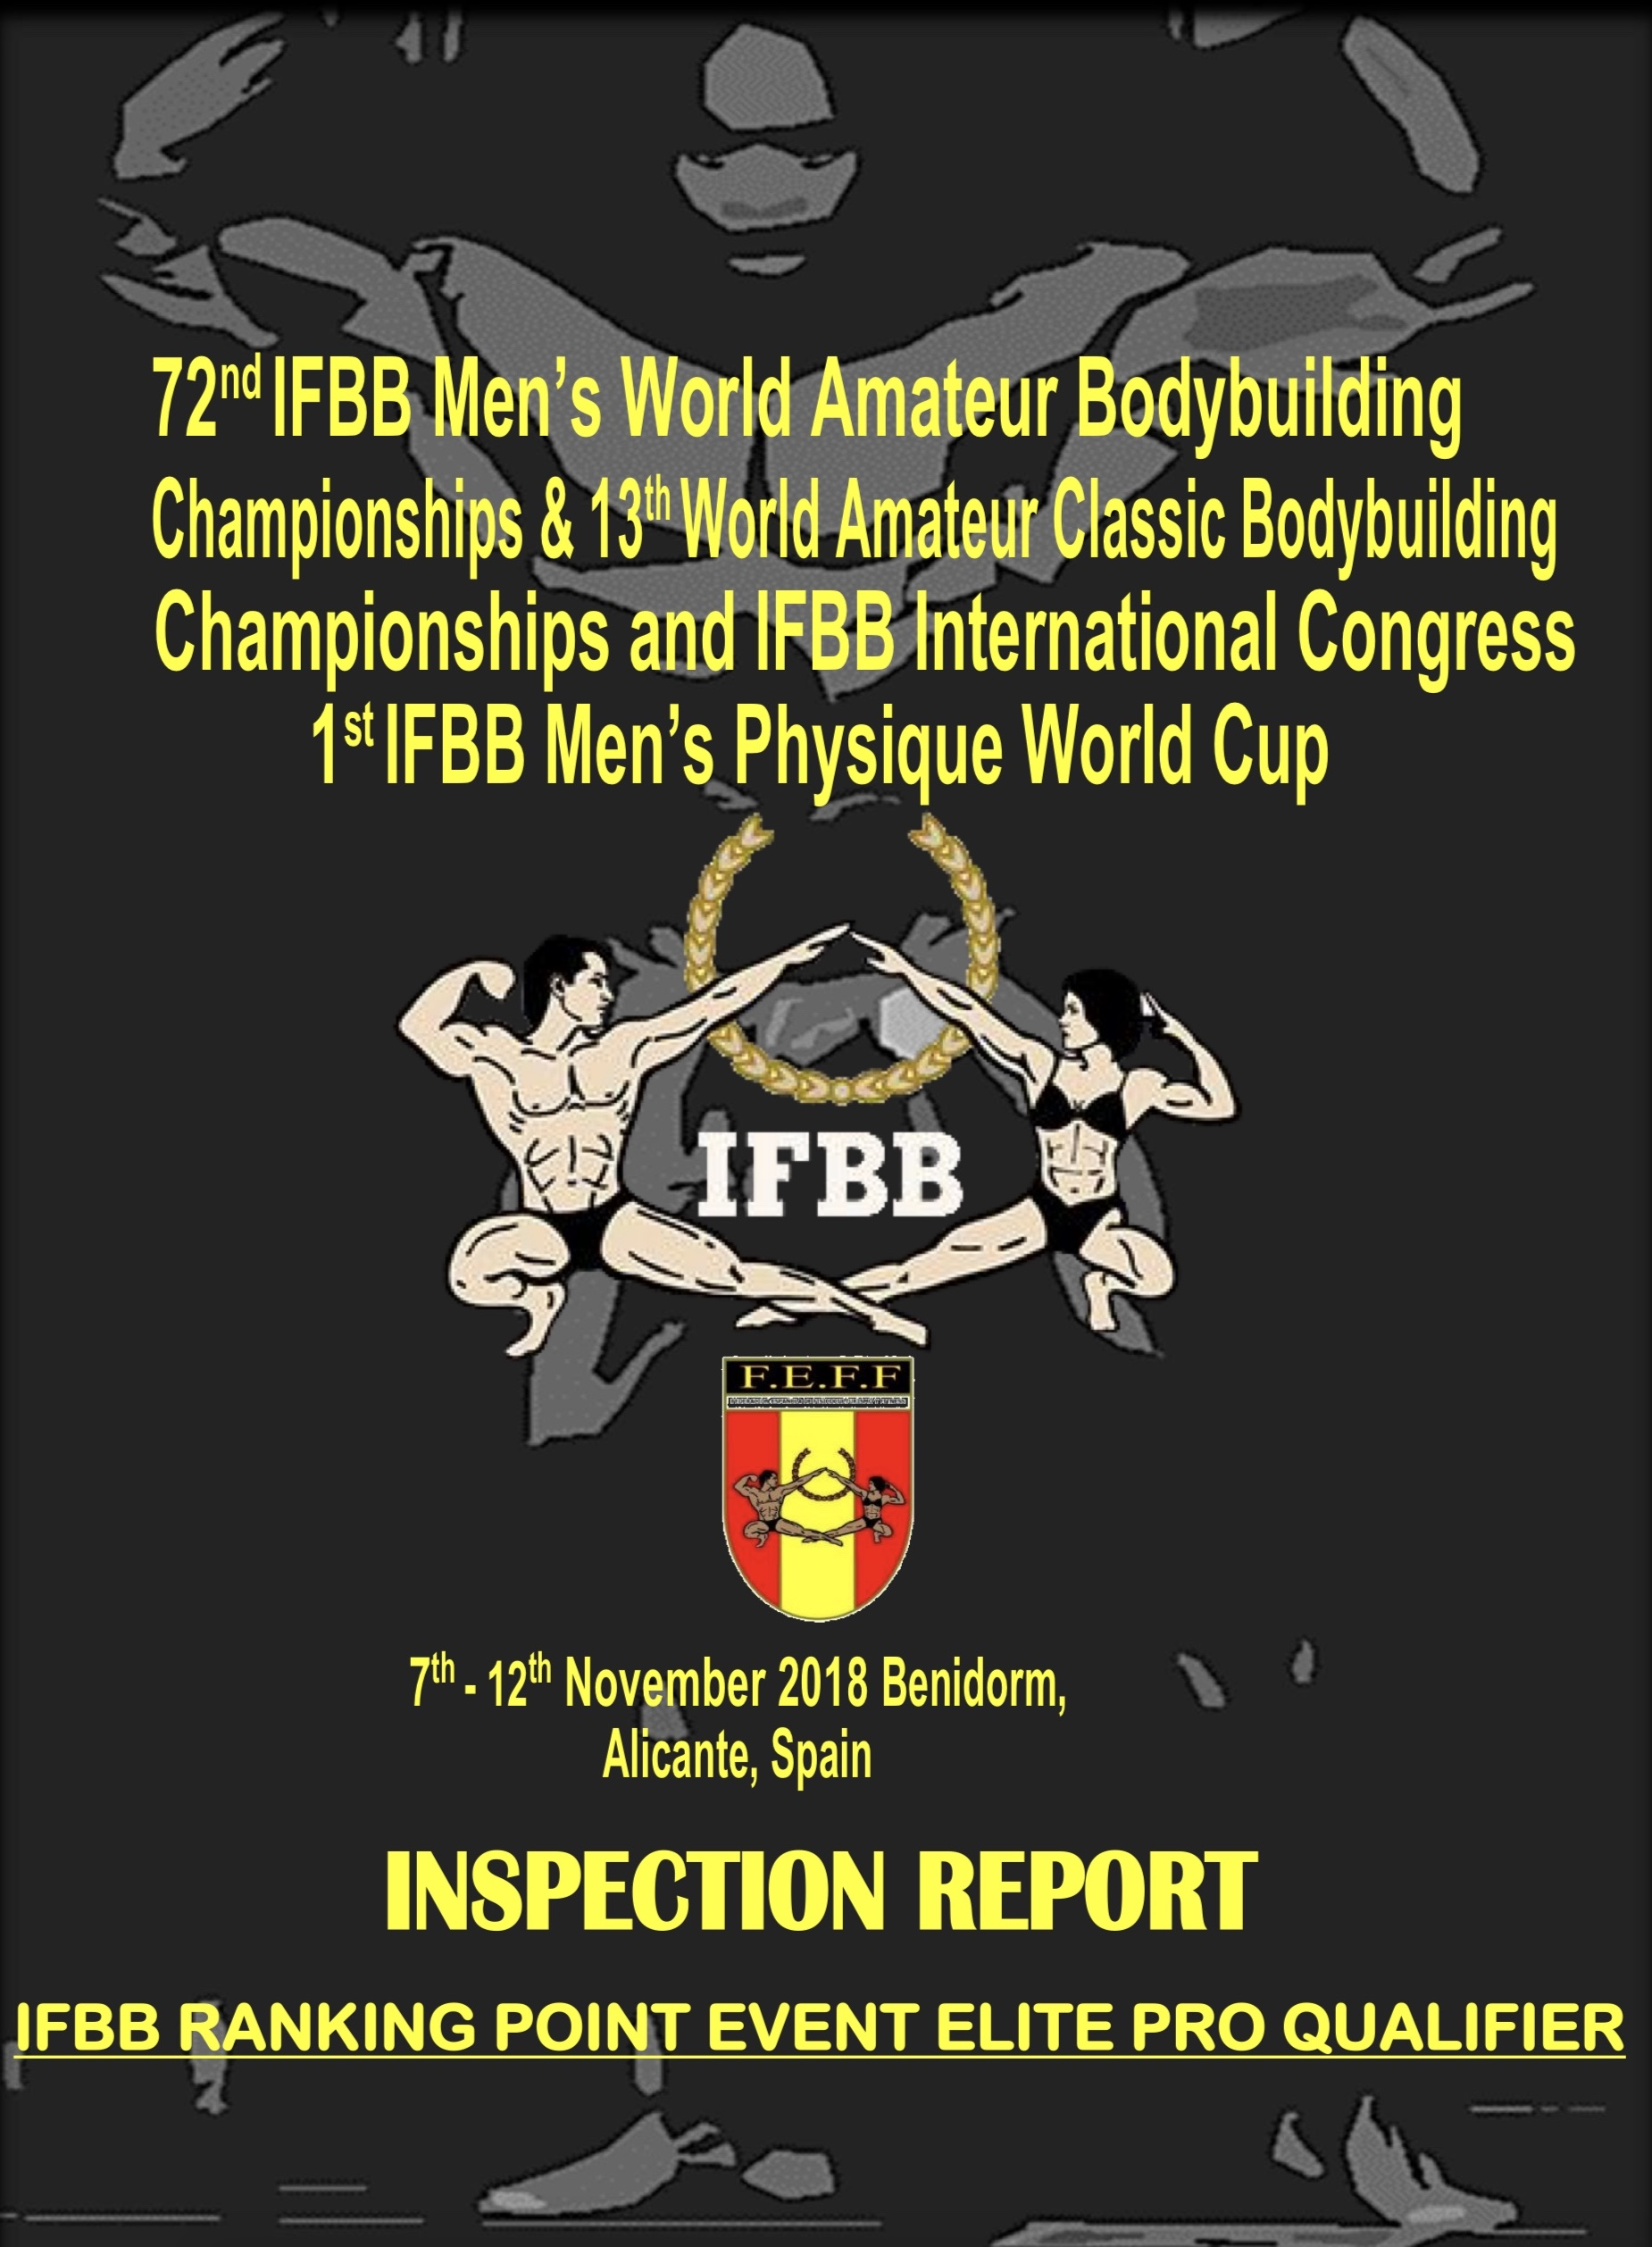 2018 Чемпионат мира по бодибилдингу INSPECTION REPORT  Men's World Amateur Bodybuilding Championships